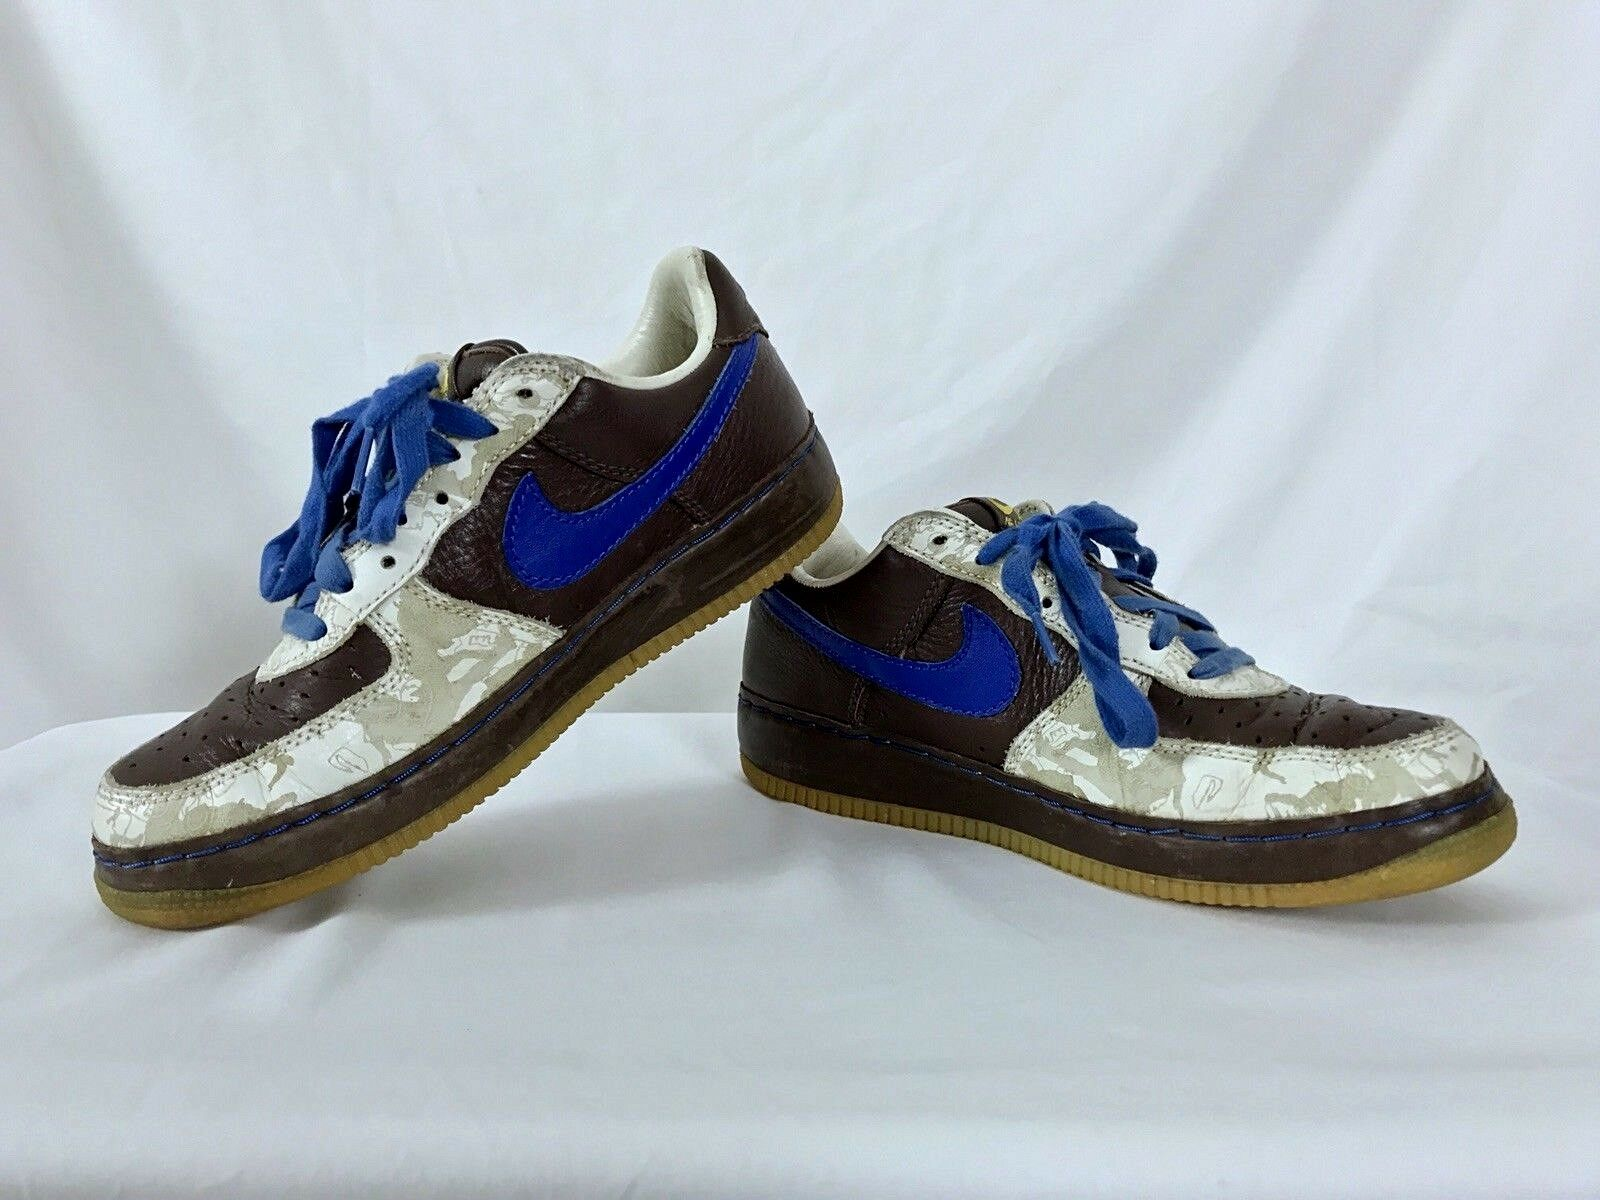 2006 06' Nike Men's Air Force 1 Premium Rare shoes Inside Out Brown White US 10